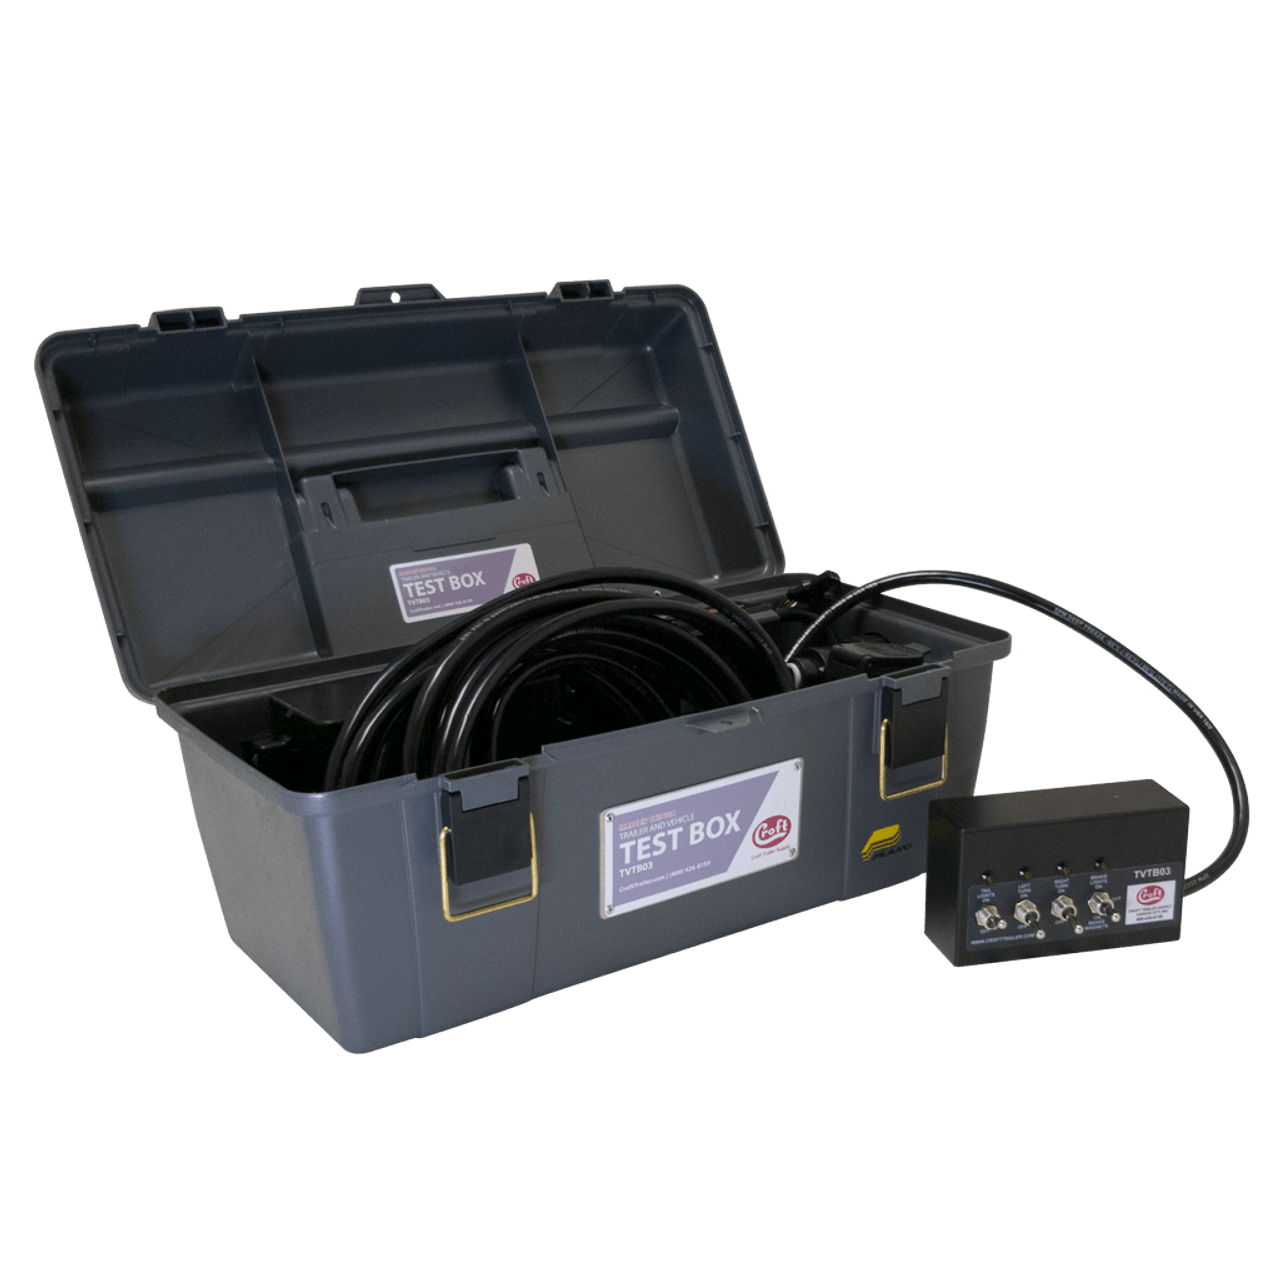 medium resolution of tvtb03 trailer and vehicle test box lights electric brakes and vehicle connector croft trailer supply